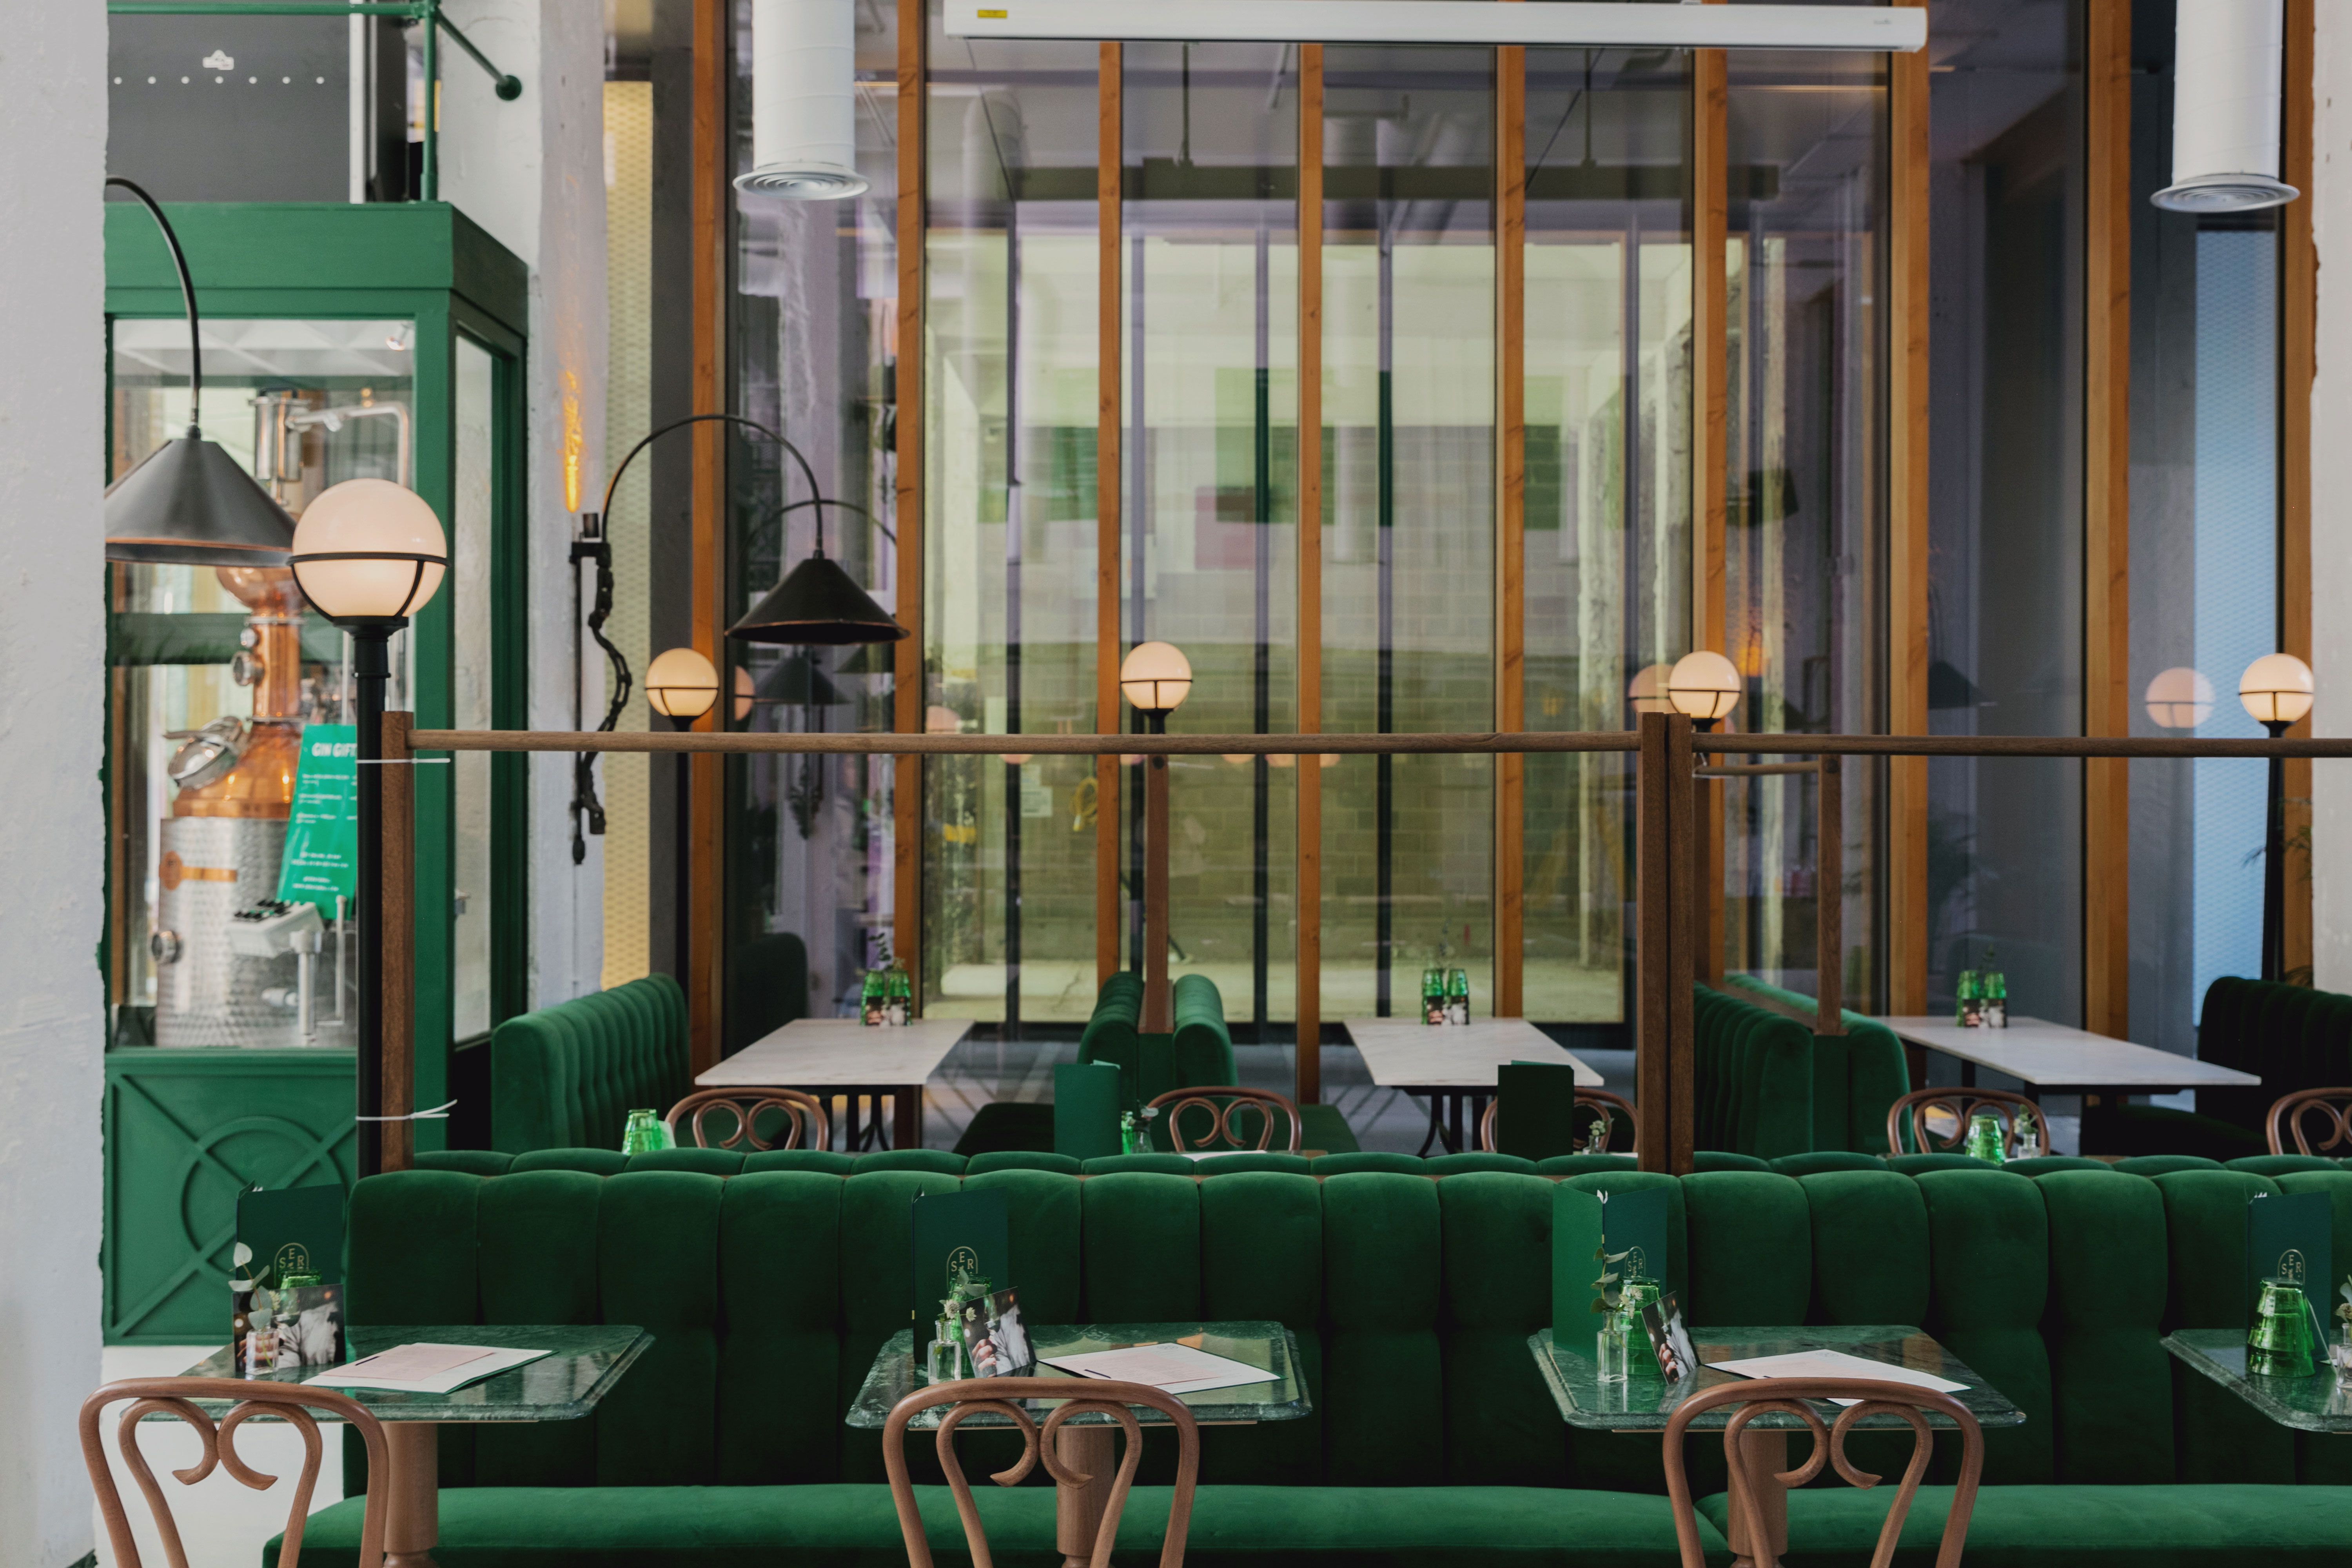 This Italian venue in Shoreditch is made for the Instagram generation